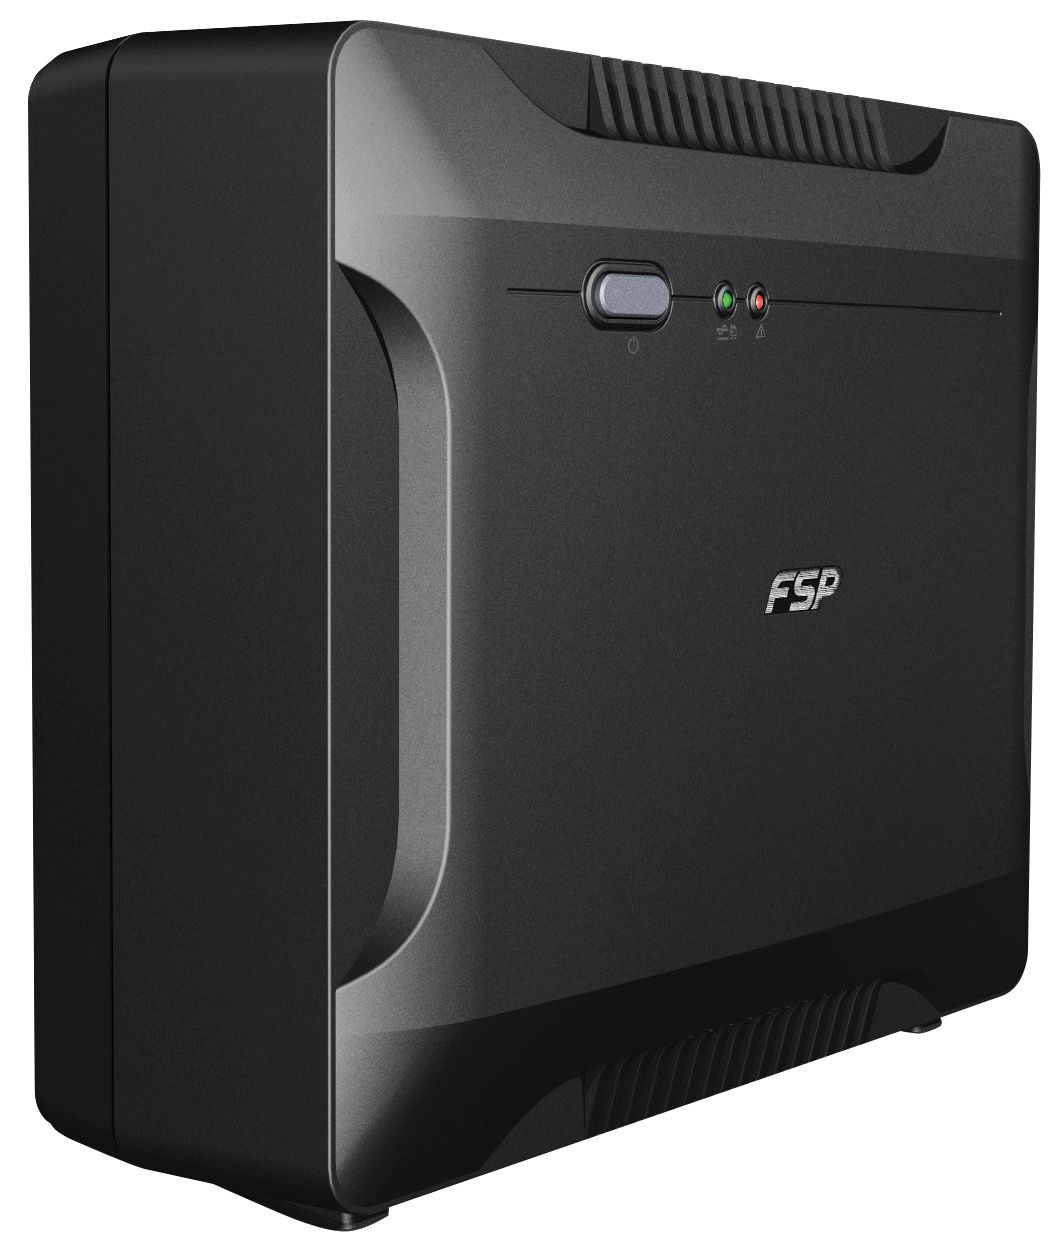 FSP/Fortron Nano 800 Stand-by (Offline) 0,8 kVA 480 W 2 AC-uitgang(en)